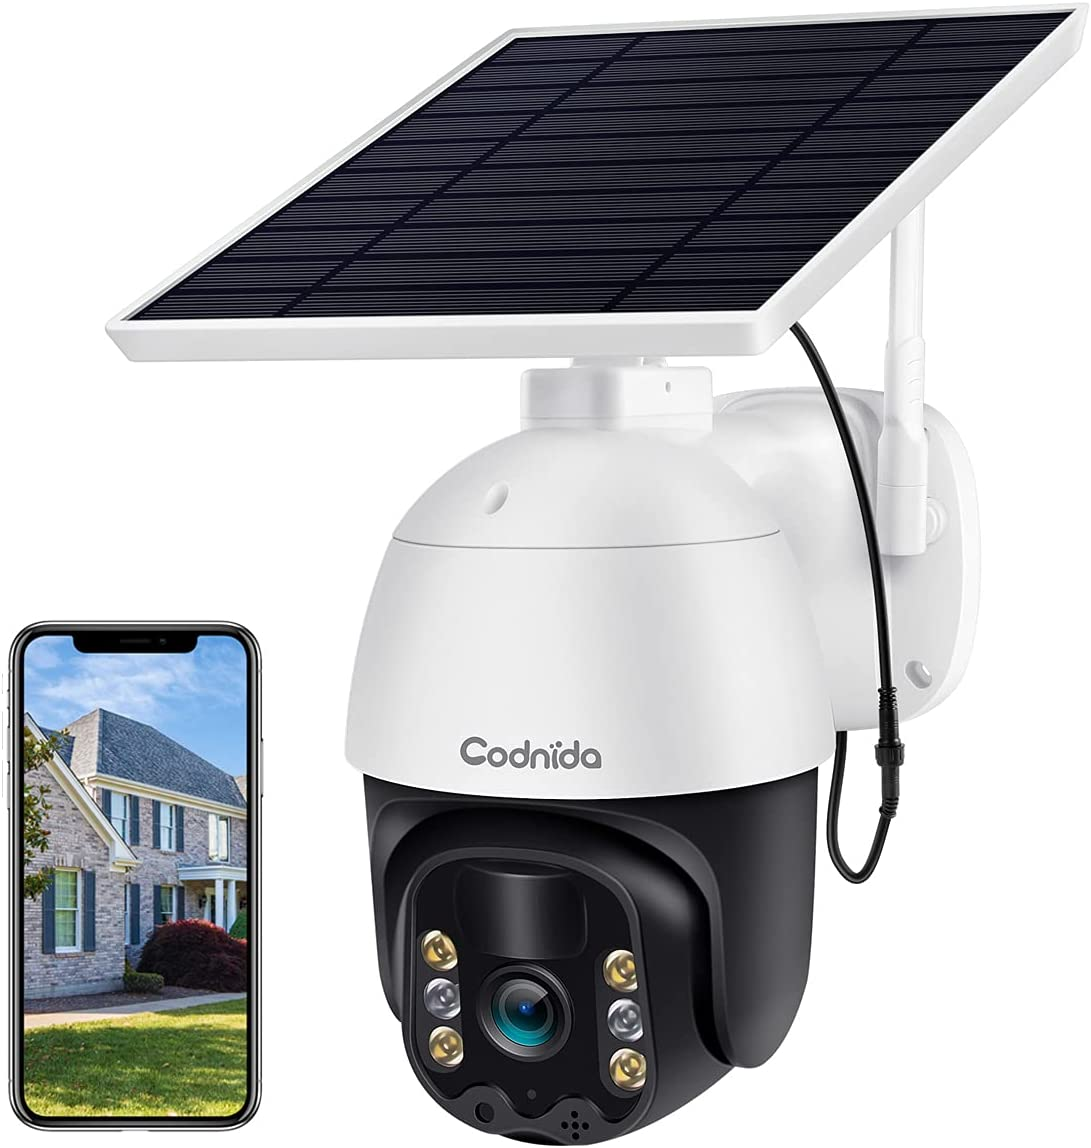 Security Camera Outdoor, Codnida Pan Tilt Solar Powered Security Camera, Wireless WiFi PTZ Camera with 1080P, Motion Detection, 2-Way Audio, Color Night Vision, IP66 Weatherproof, SD/Cloud Storage